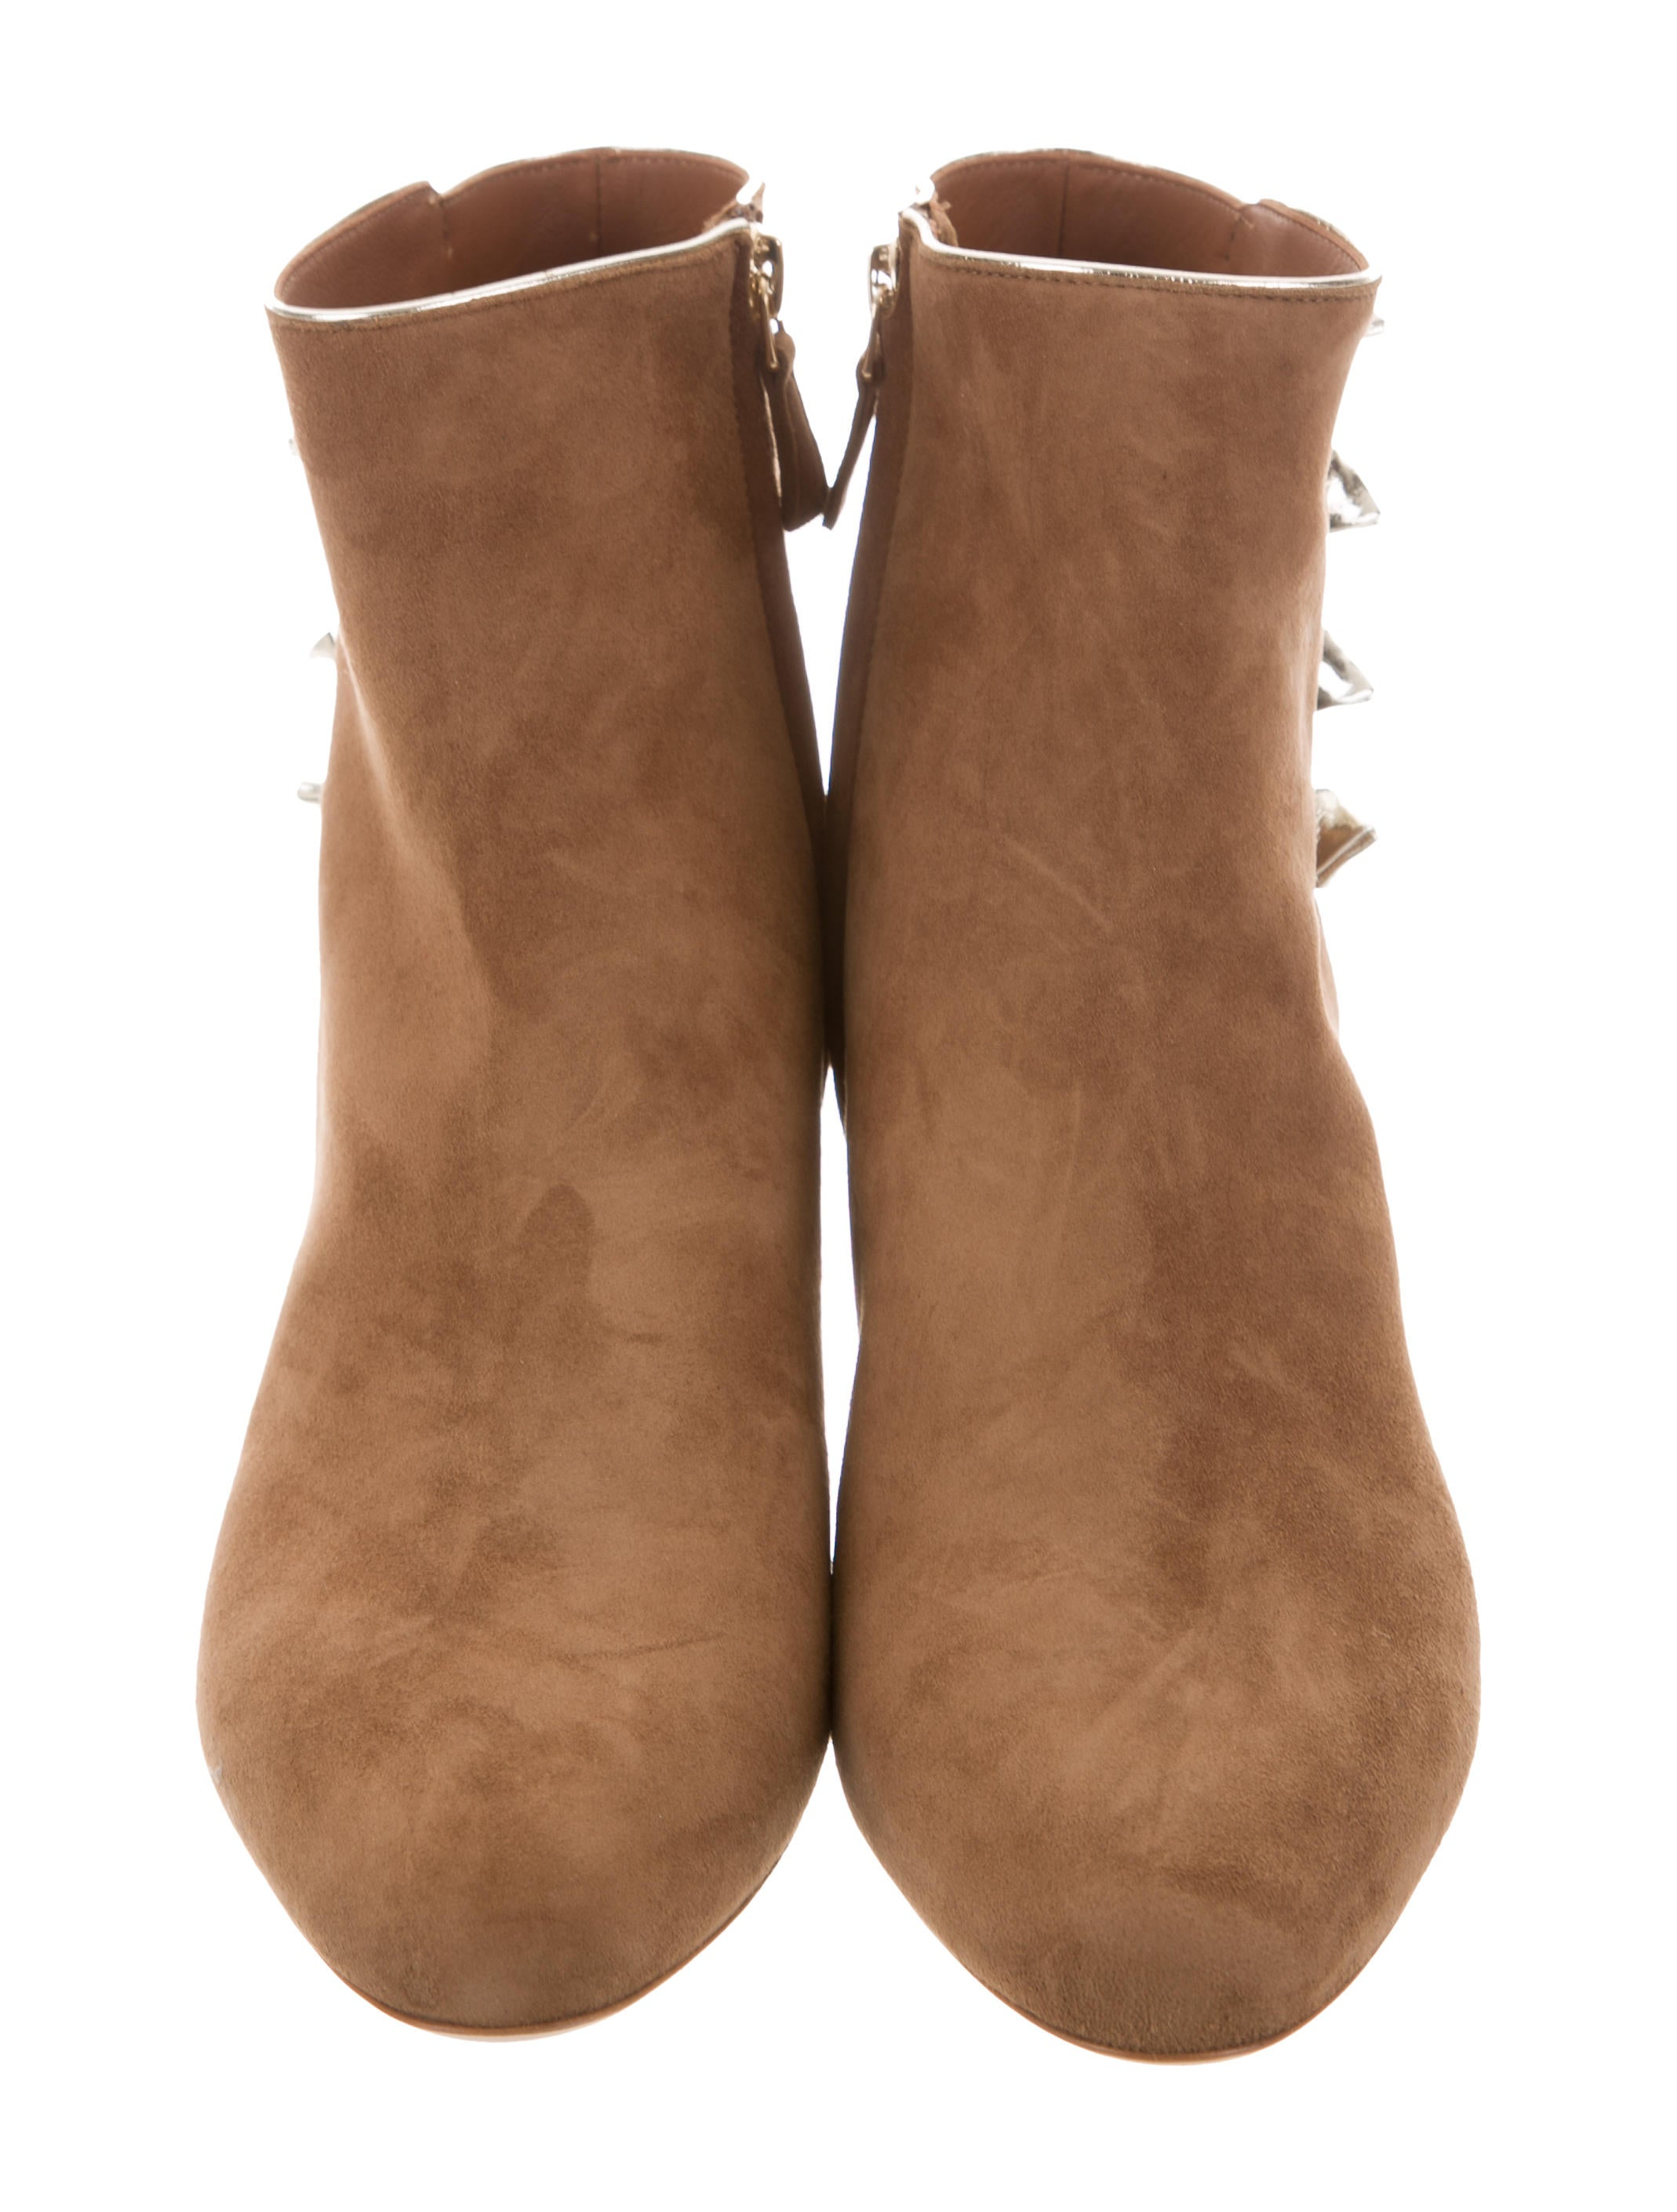 Malone Souliers Effie Suede Booties w/ Tags clearance low cost great deals cheap price G4vOqs